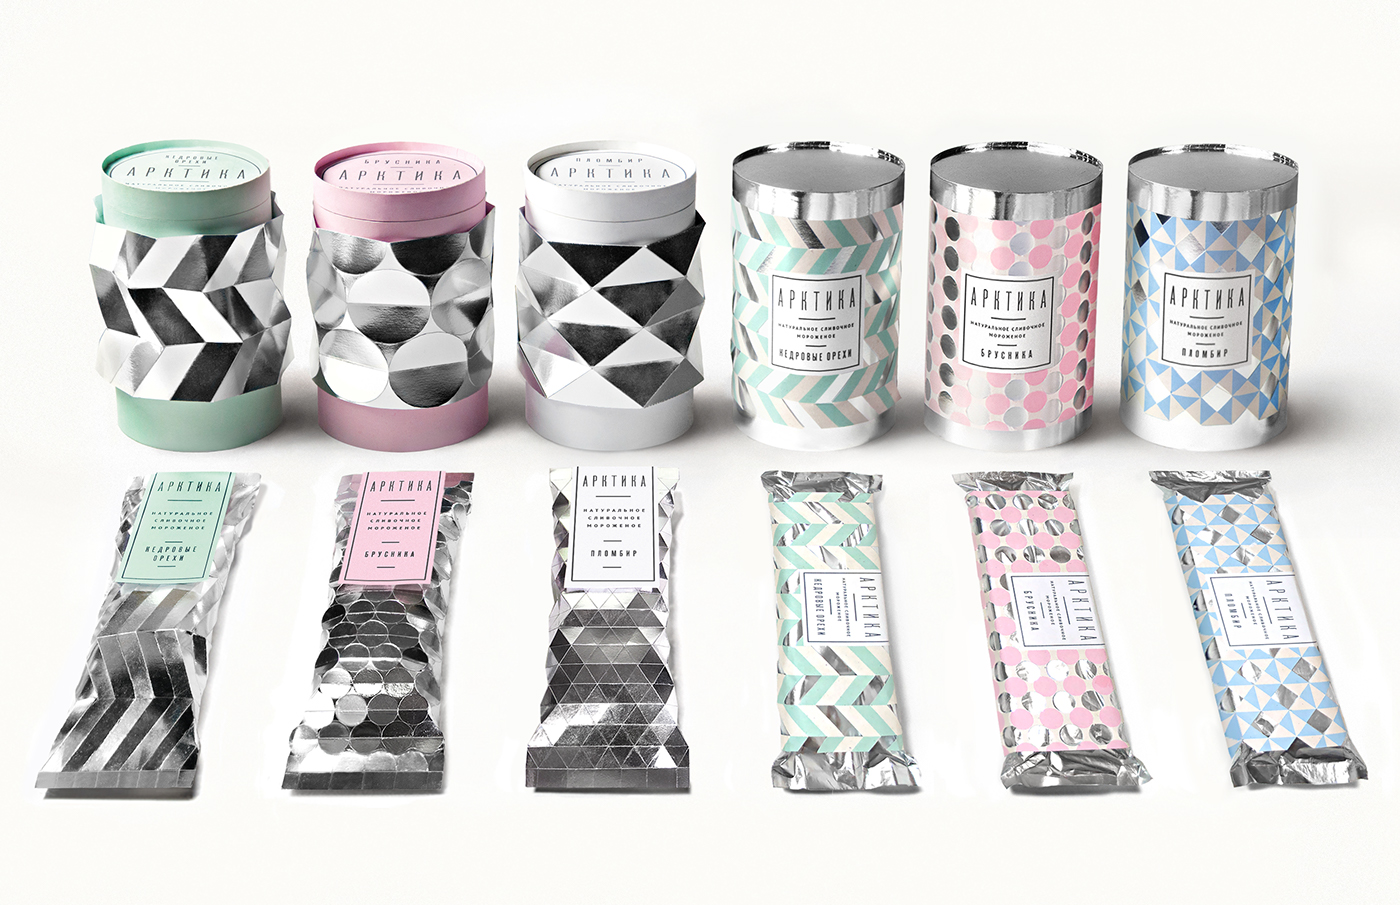 Arktika Ice Cream Packaging By Natasha Chuvinova